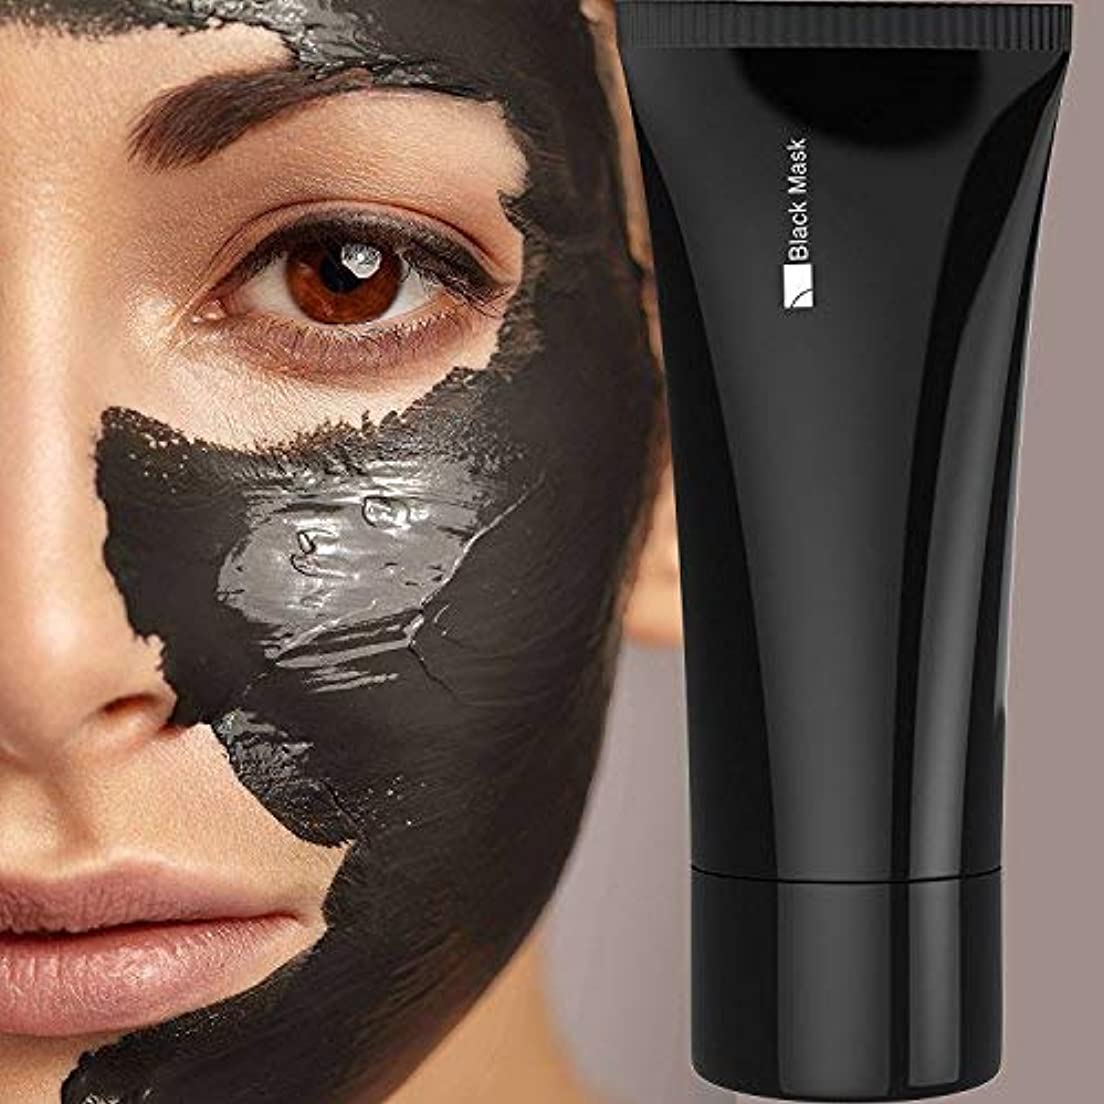 添付論争の的好きFace apeel Blackhead Remover Cleaner Purifying Deep Cleansing Acne Black Mud Face Mask Peel-off